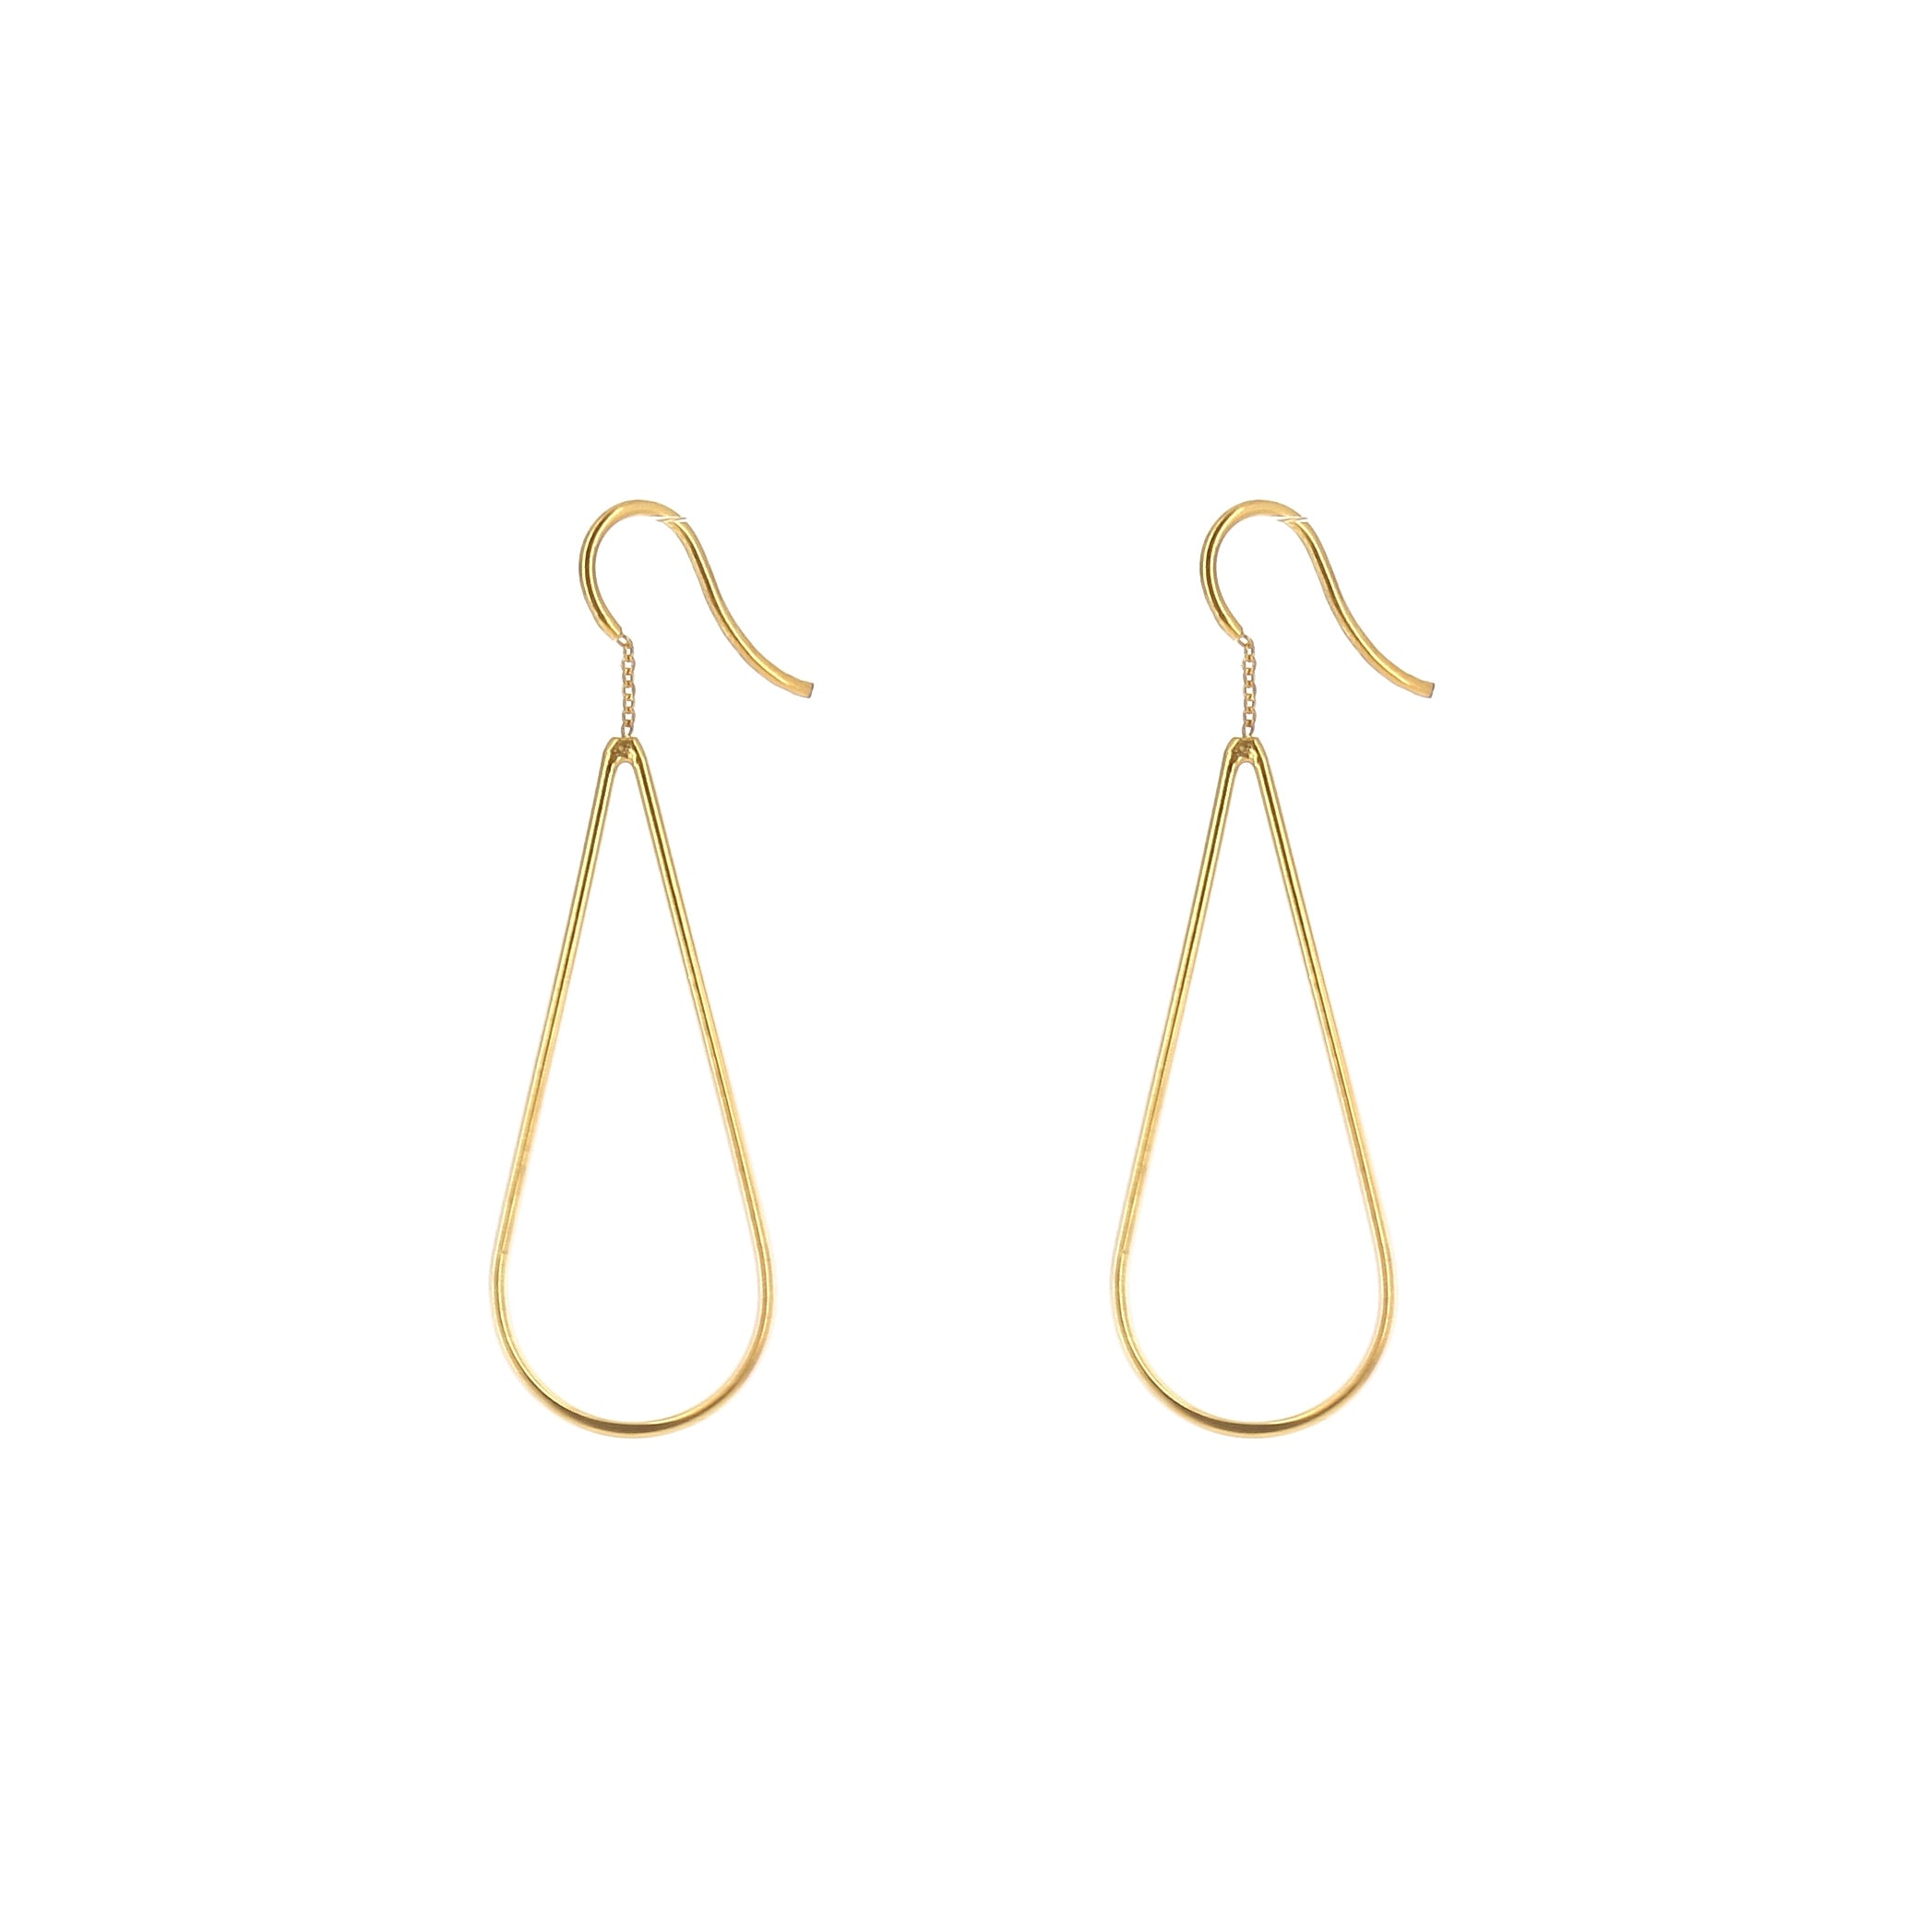 rings calder inspired major statement auman ear products mocal brass earrings megan